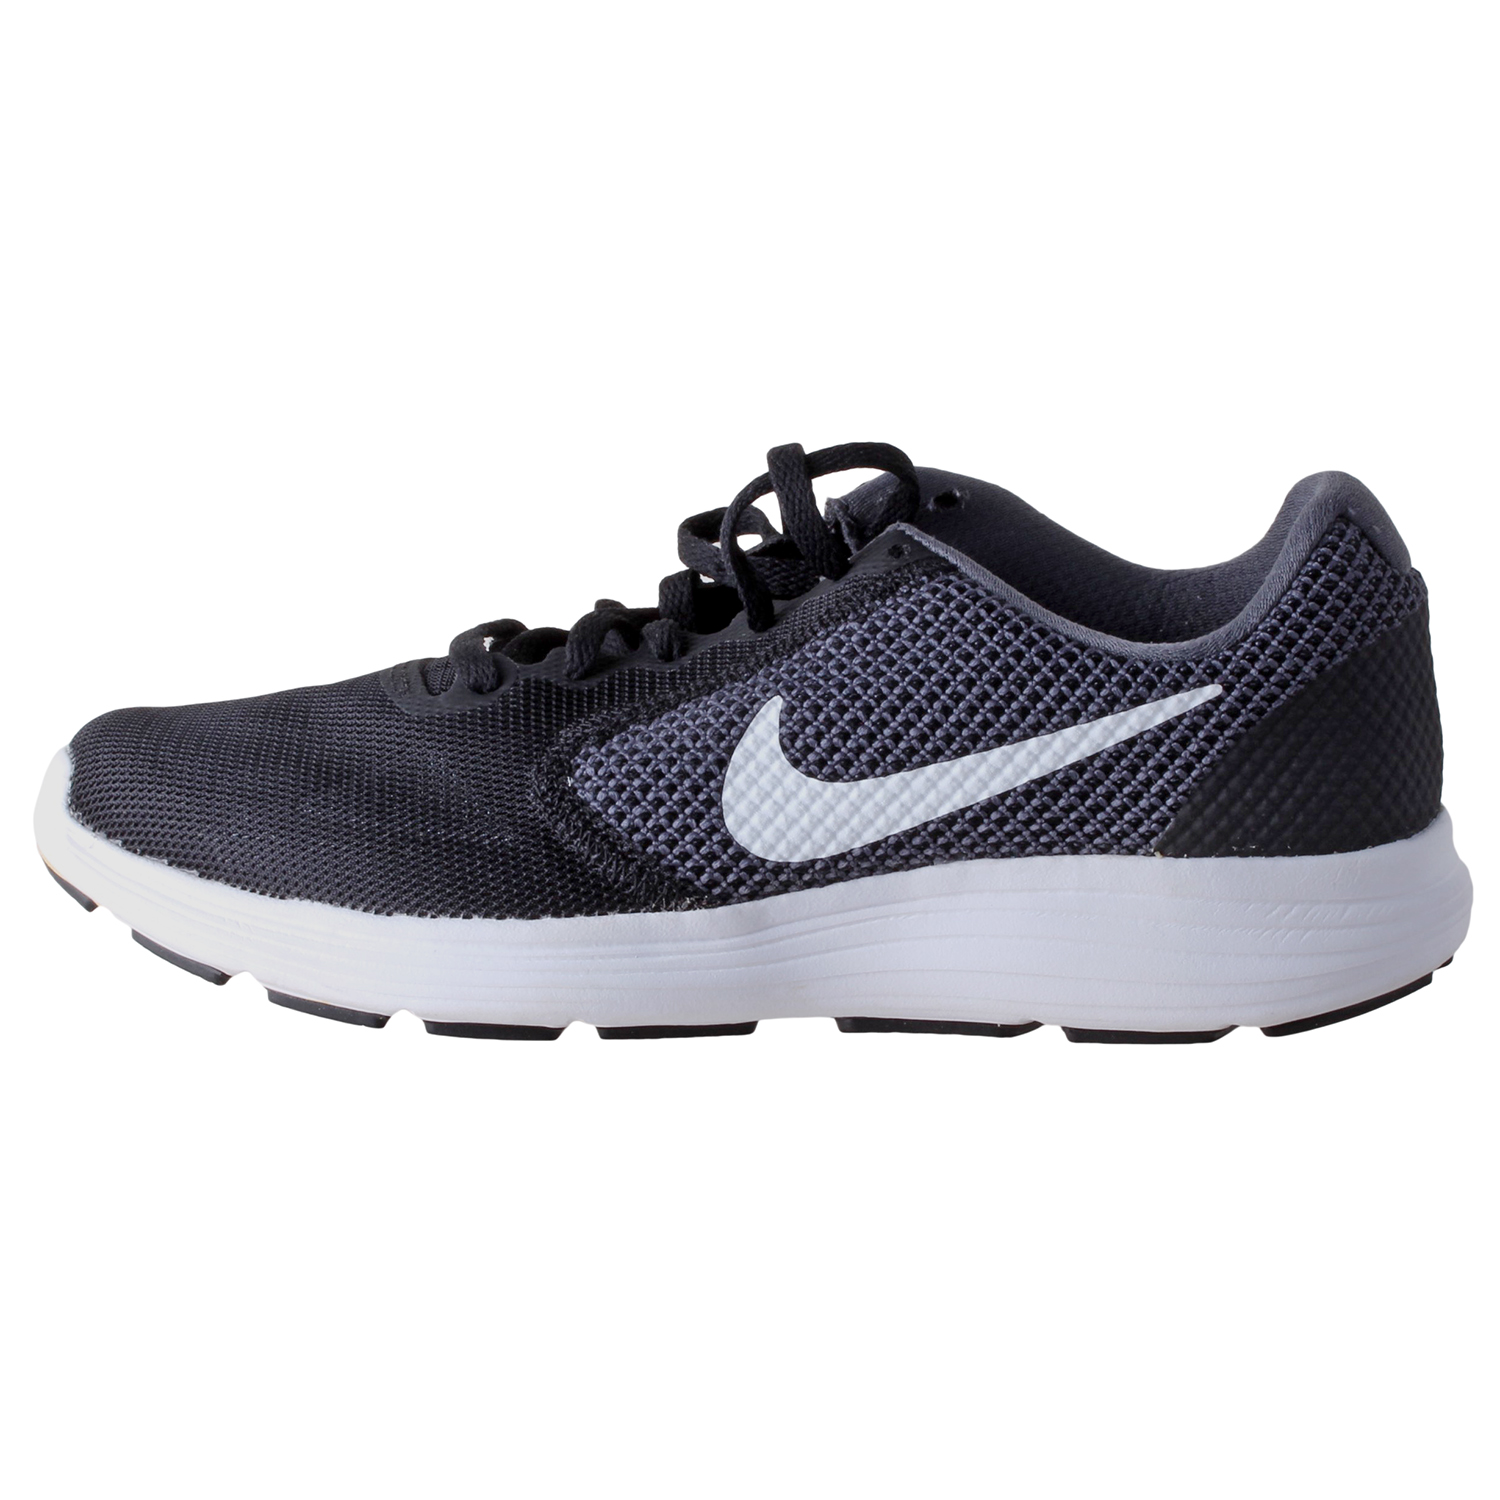 6a0f7b2106f Details about Nike Women s Revolution 3 Running Sneaker Shoes 819303-001 sz  8.5